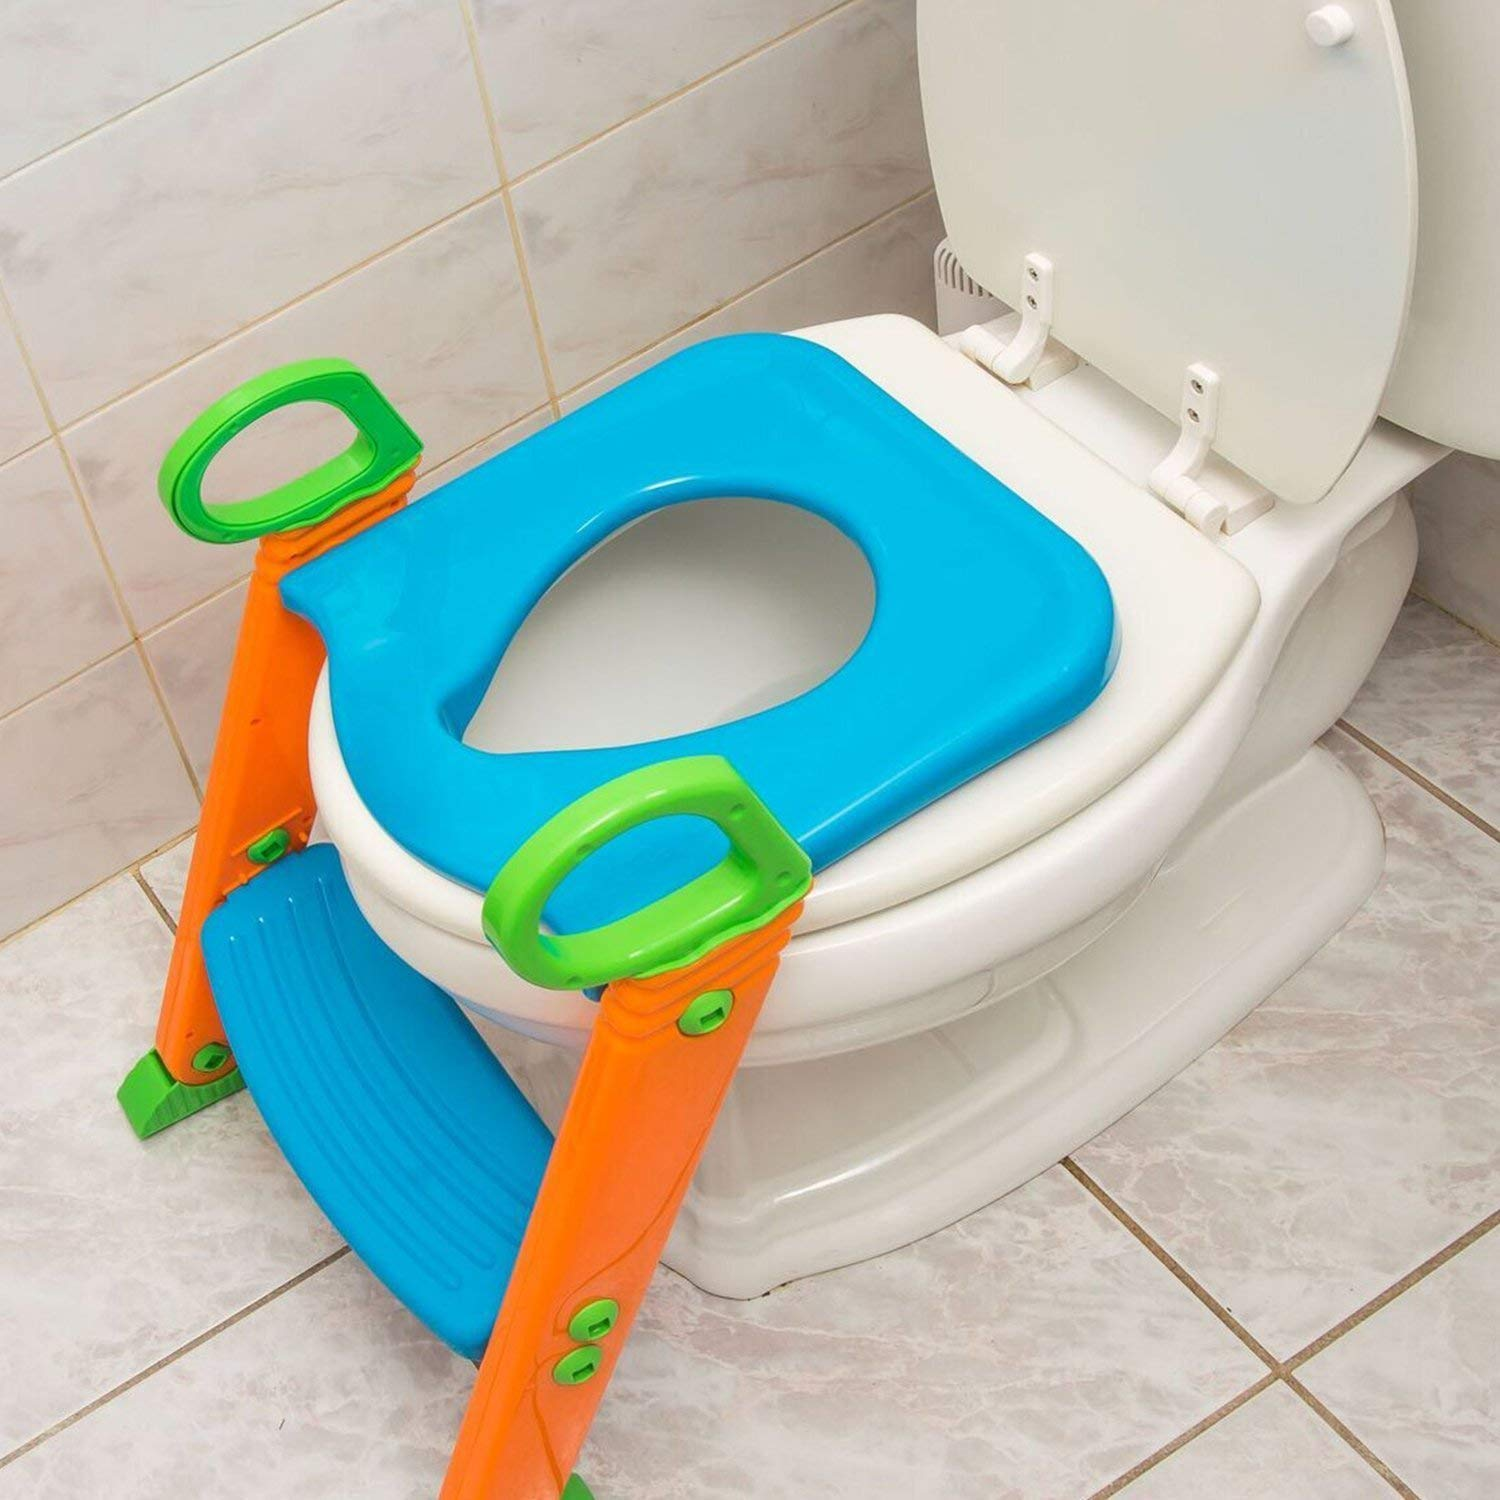 Potty Toilet Seat with Step Stool ladder, (3 in 1) Trainer for Kids Toddlers W/ Handles. Sturdy, Comfortable, Safe, Built In Non-Slip Steps W/ Anti-Slip Pads. Excellent Potty Seat Step Boys Girls Baby by Alayna (Image #6)